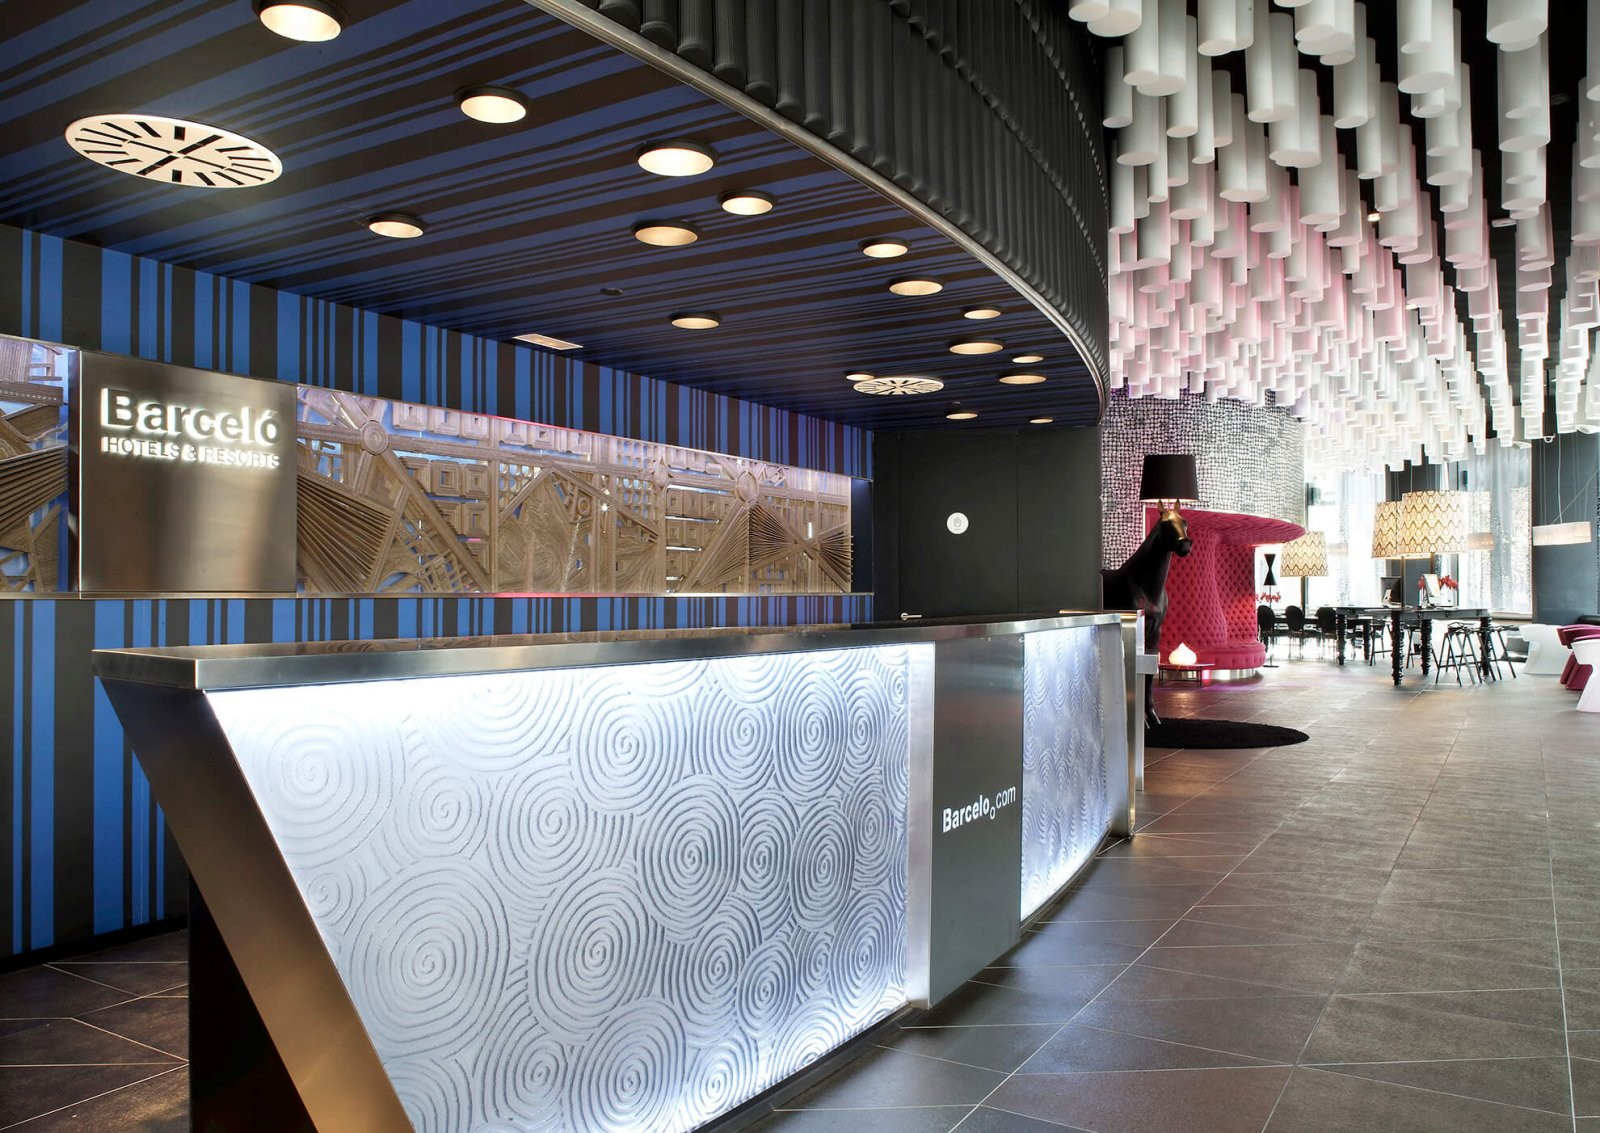 Detail view of the front desk of the raval hotel and the common area, where its interesting ceiling stands out